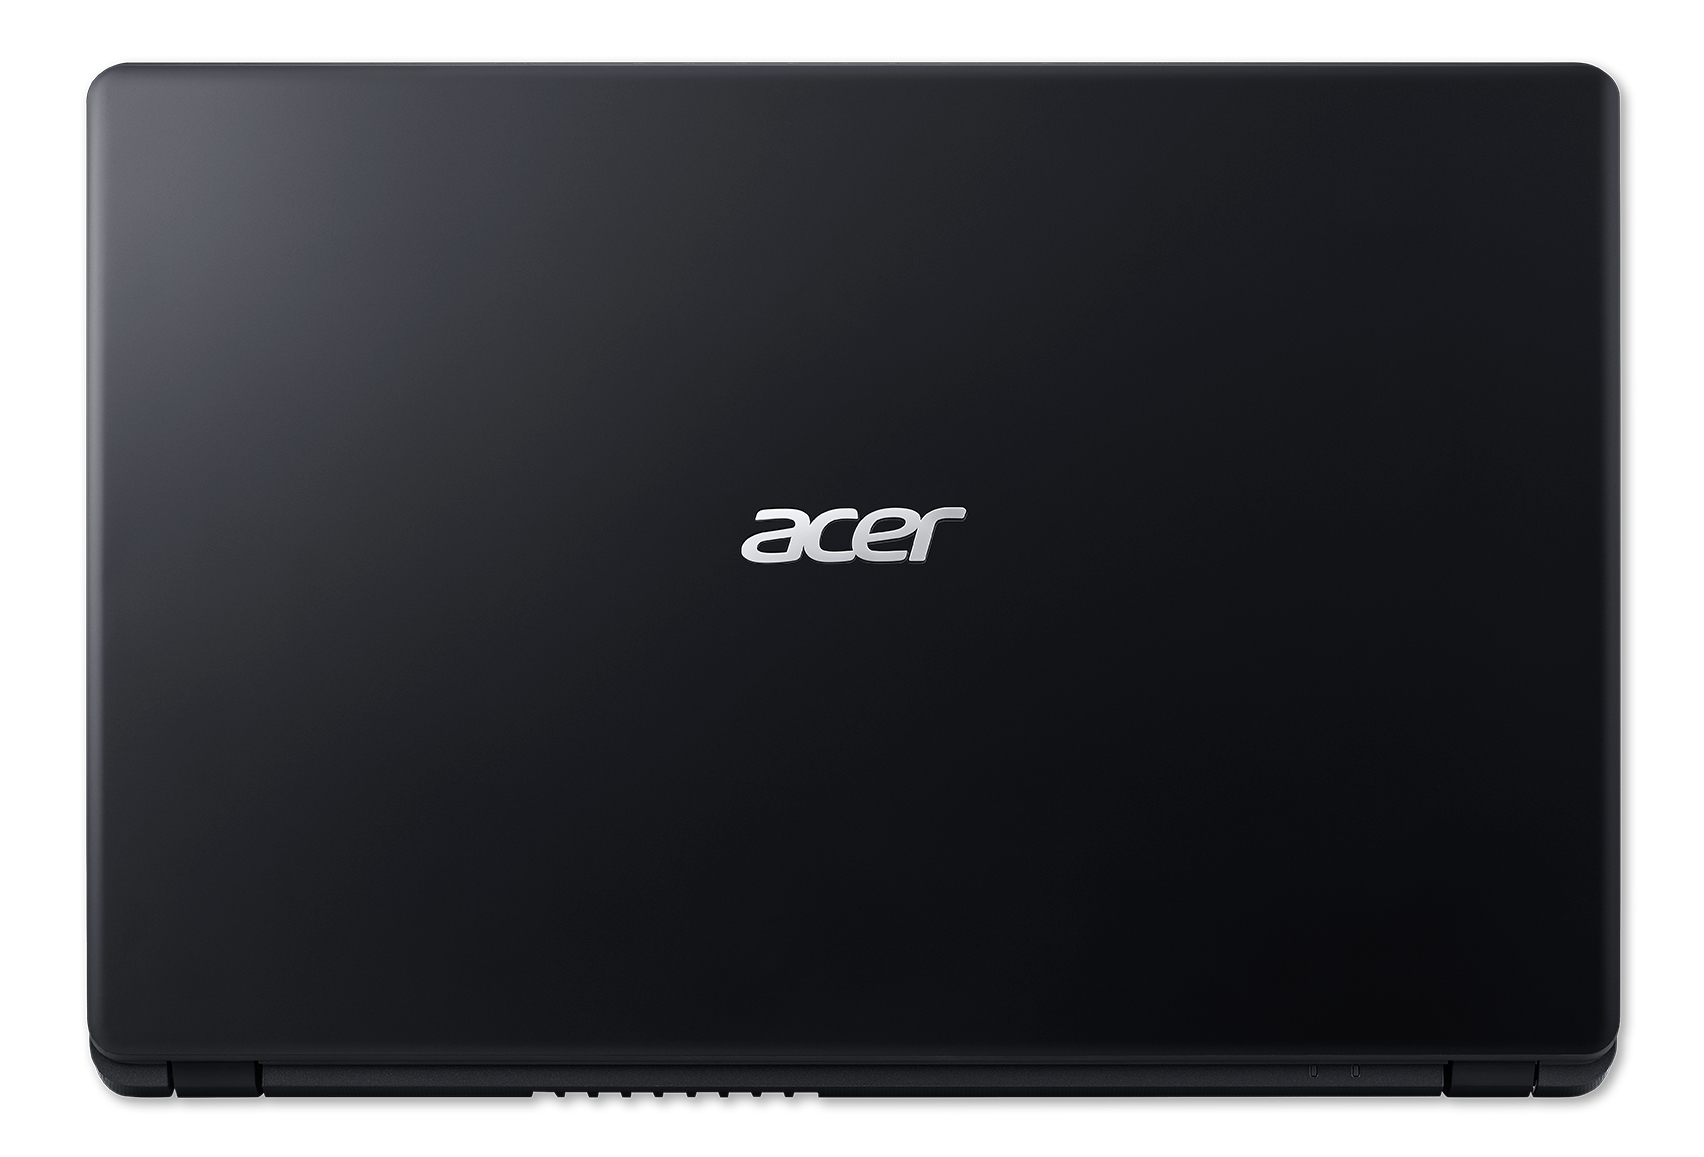 Acer A315-56-308M, 15.6i FHD ComfyView, Intel Core i3-1005G1, 4GB, 512GB PCIe NVMe SSD, Intel UHD Graphics, Wi-Fi 5 AC+ BT 4.0, Win10Home, Black, QWERTY